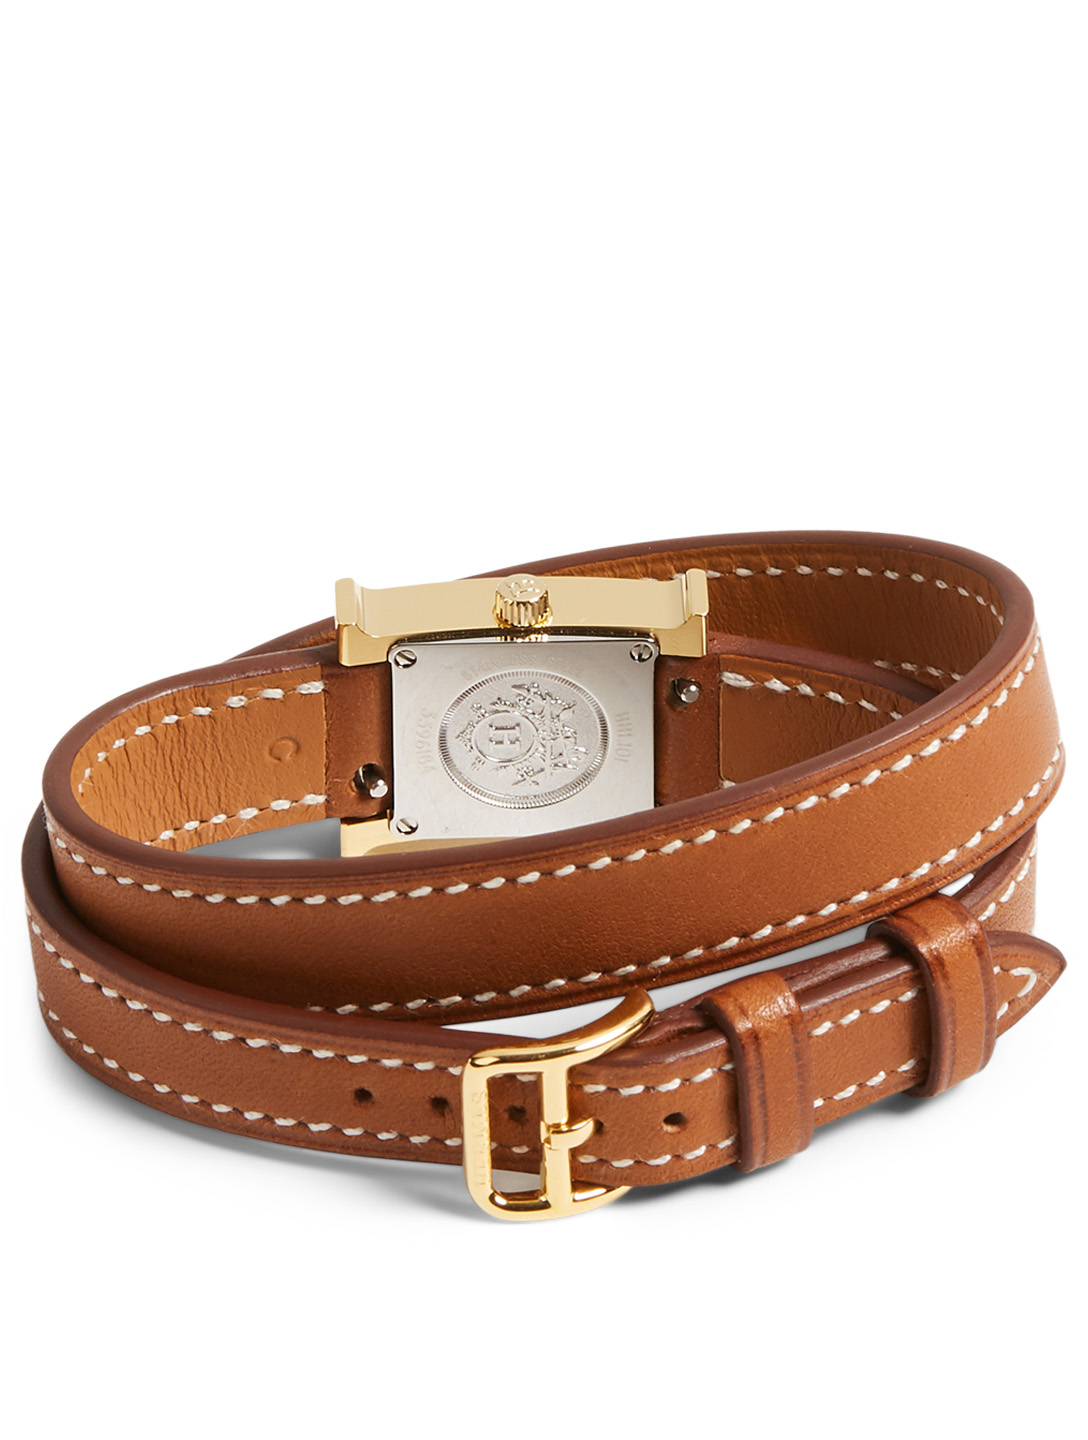 HERMÈS Very Small Heure H Goldplated Leather Wrap Strap Watch Women's Metallic